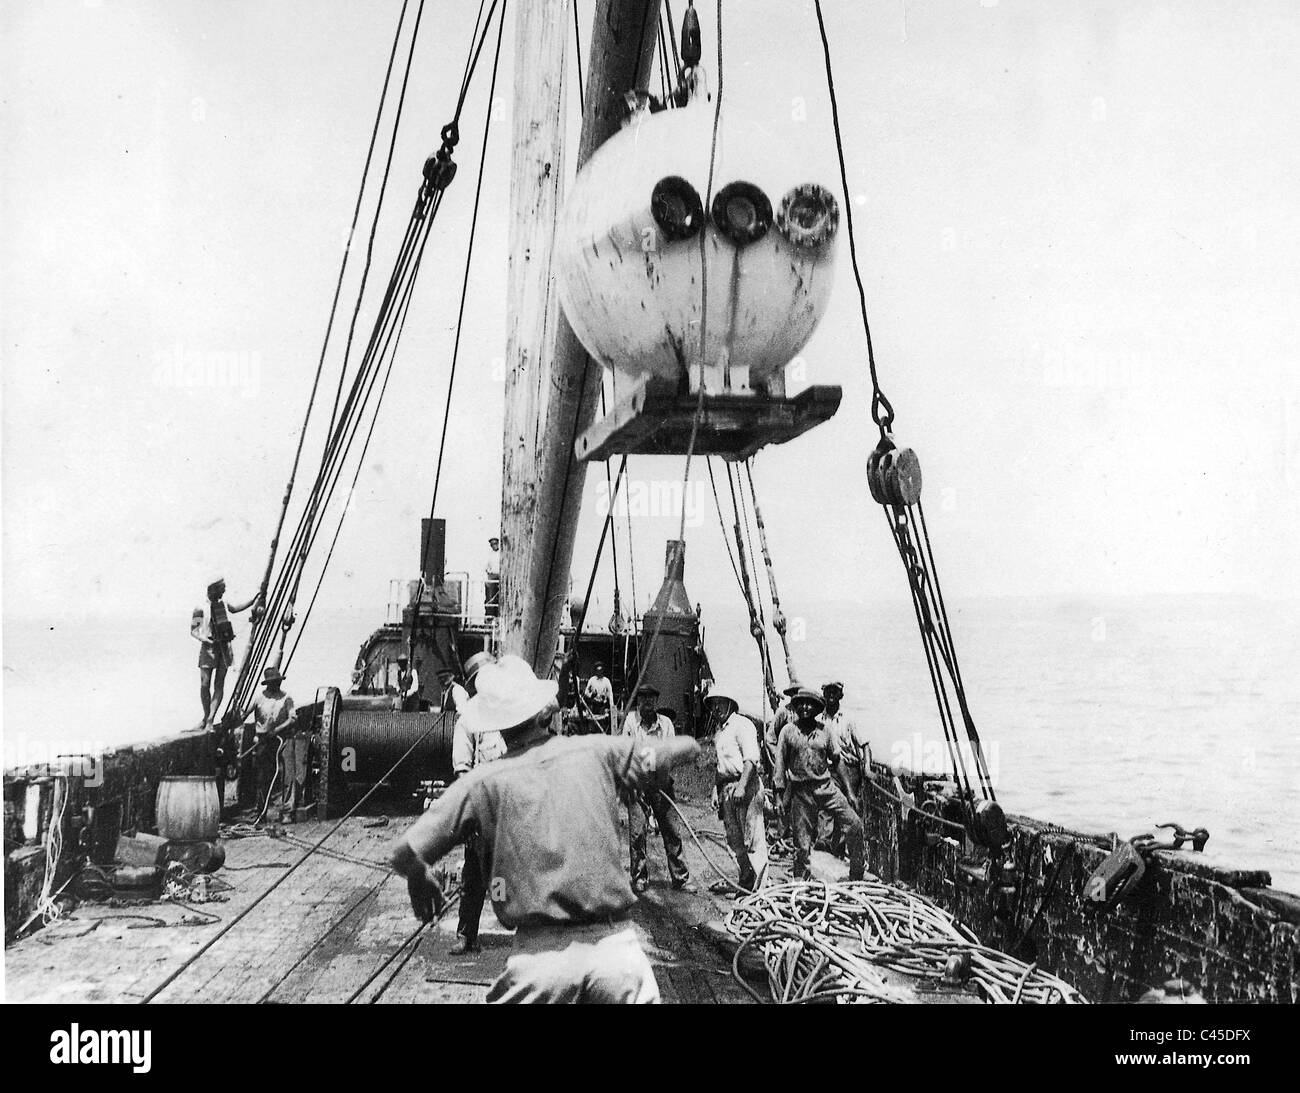 Diving Bell 'Bathysphere' on the expedition ship, 1932 - Stock Image